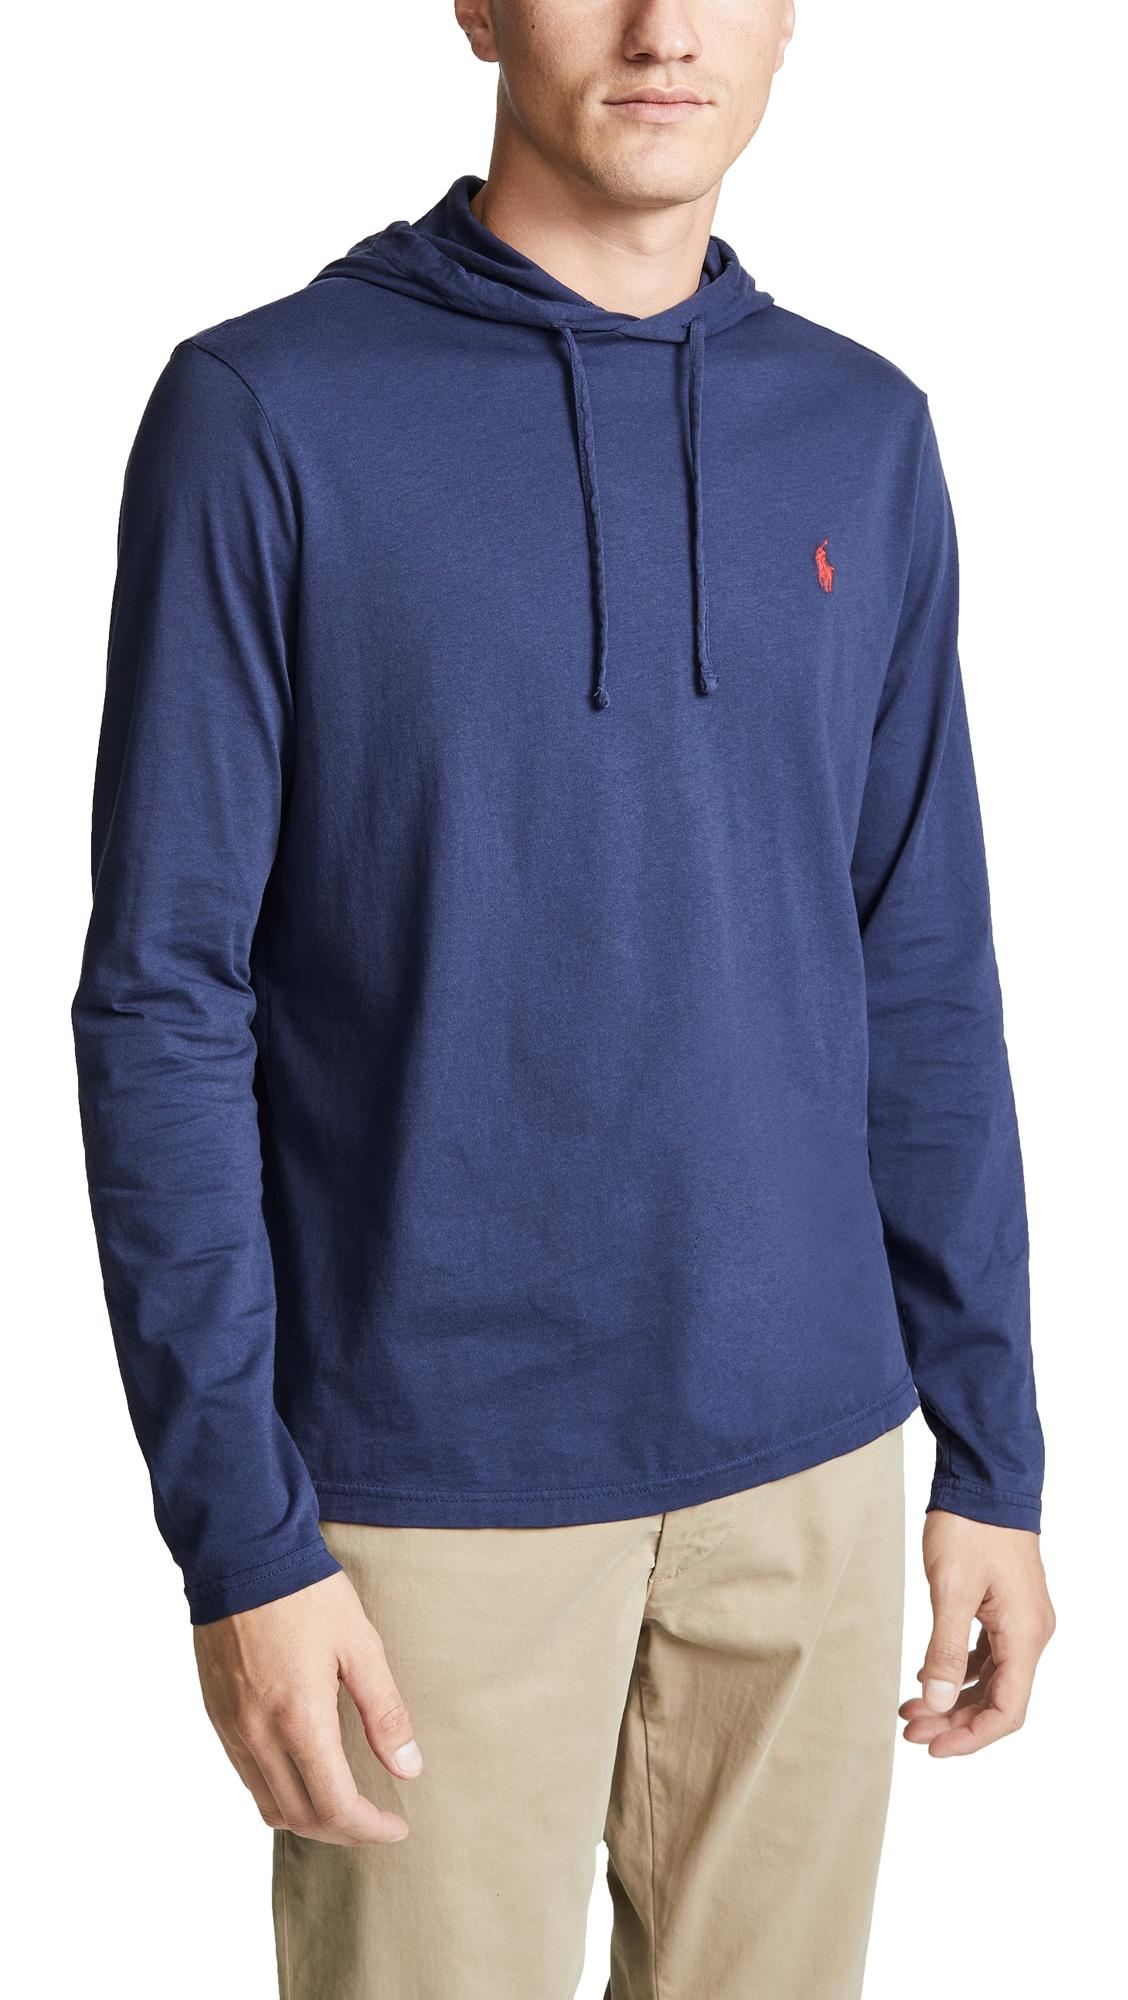 In Navy Hooded Tee Long Sleeve Shirt zUMqVpS